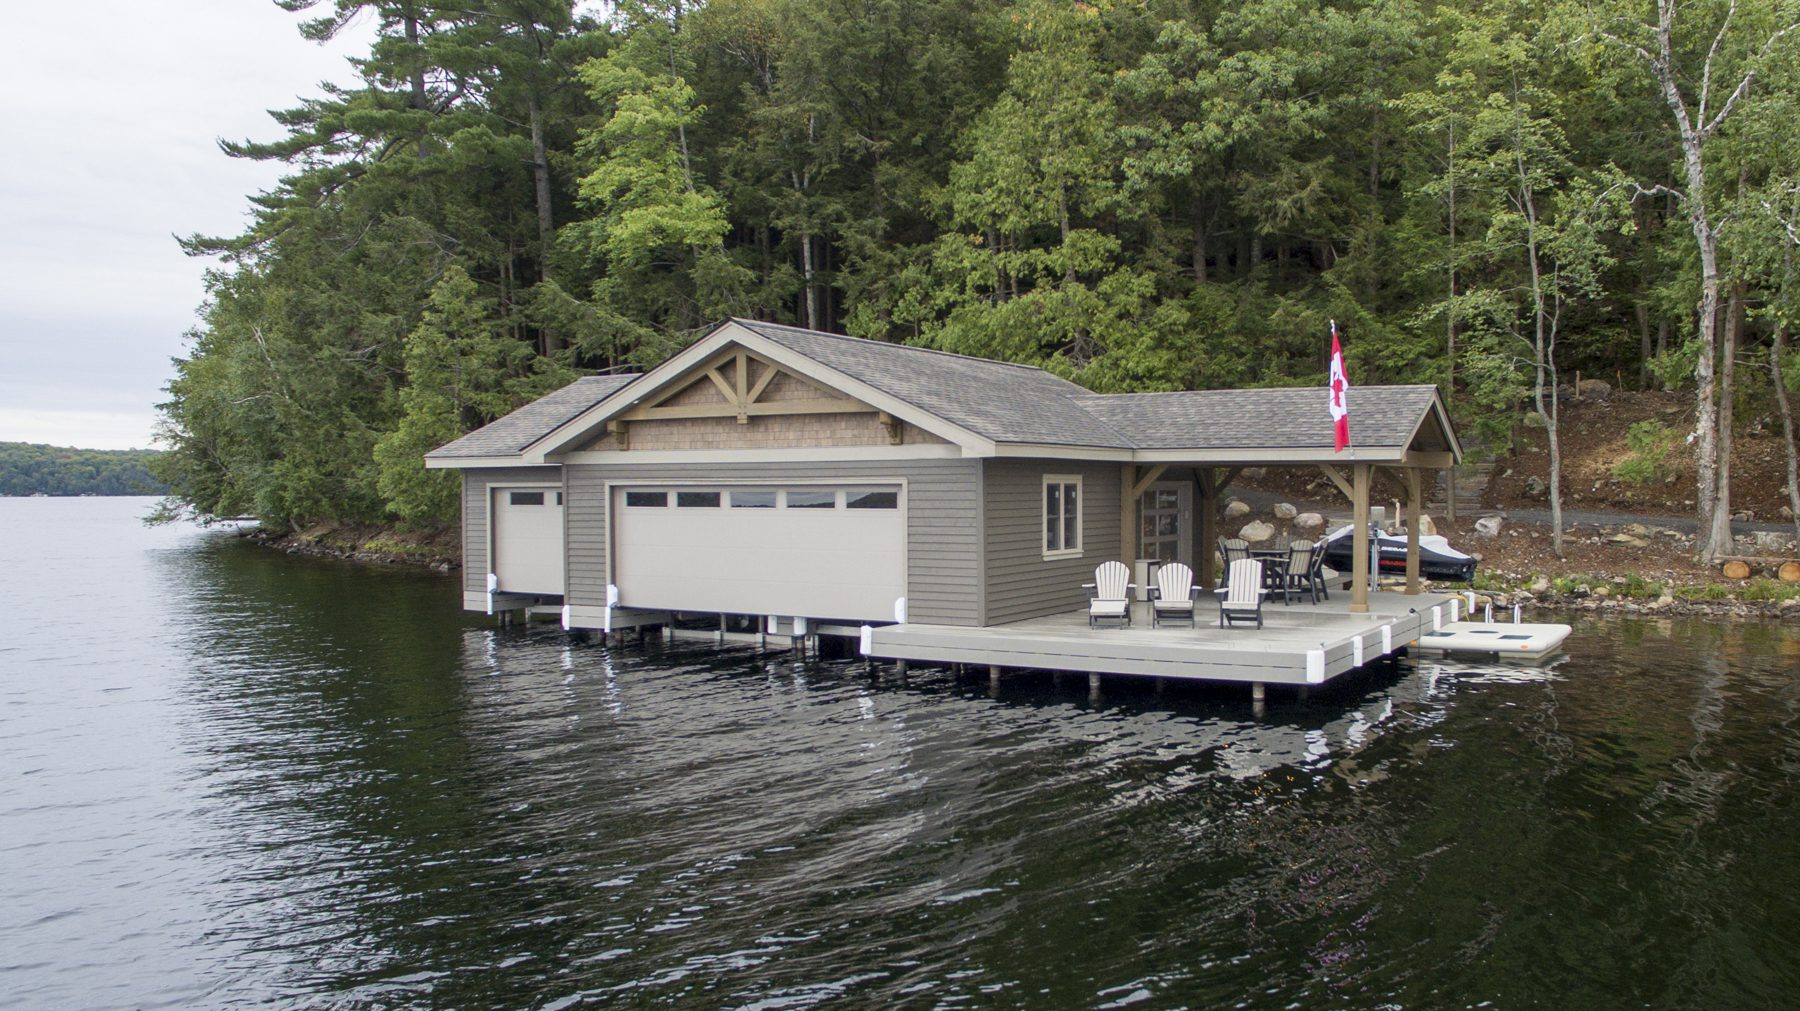 Normerica Timber Frame, Exterior, Cottage, Lake, Boathouse